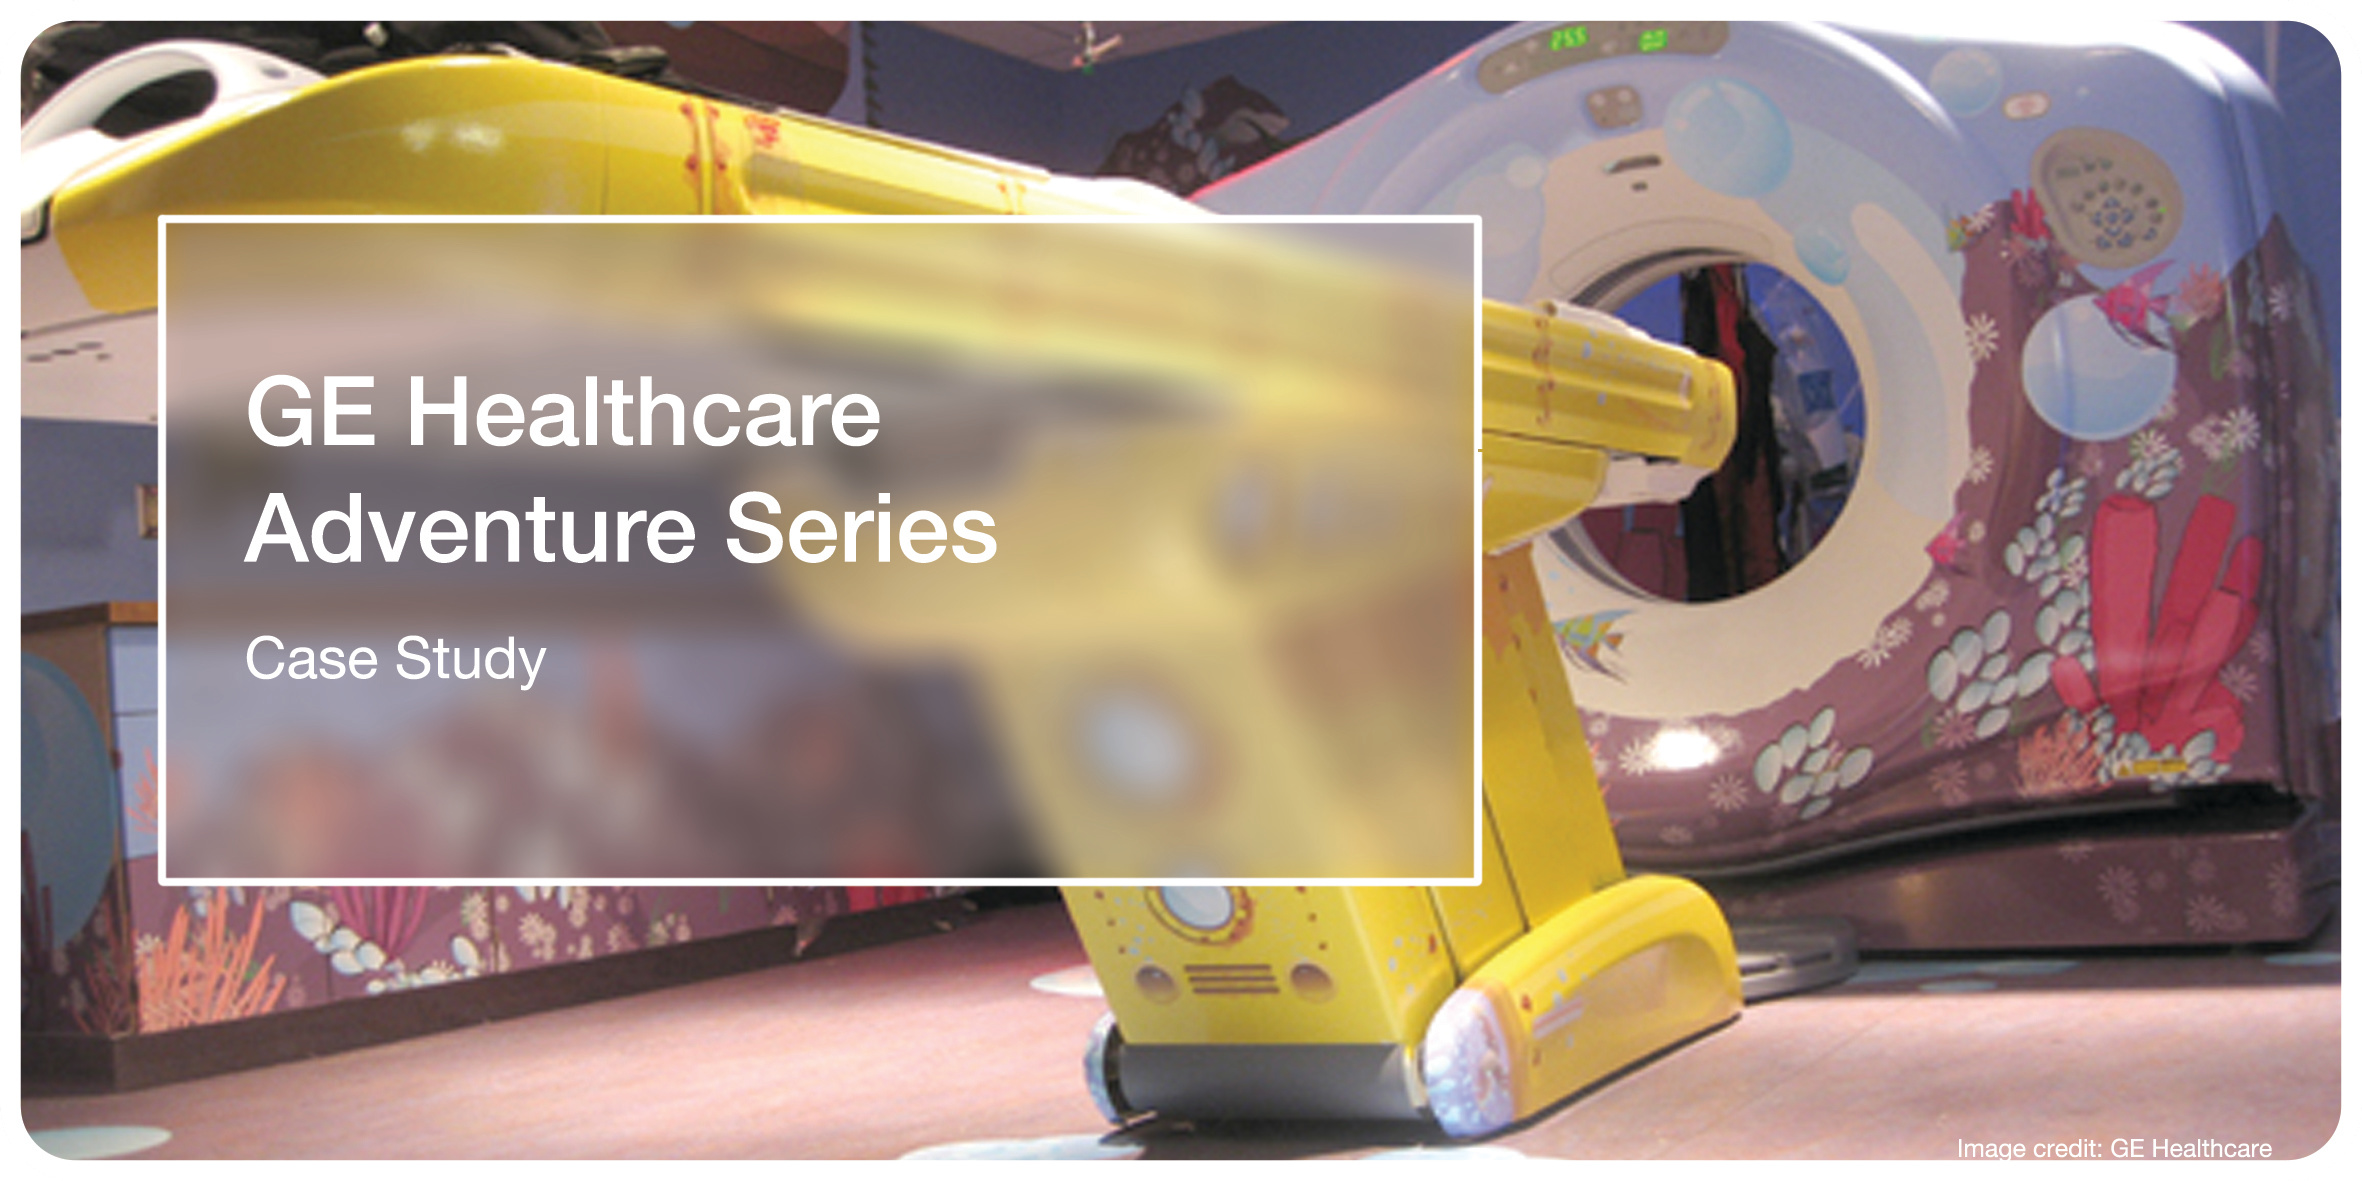 GE Healthcare Adventure Series Case Stud